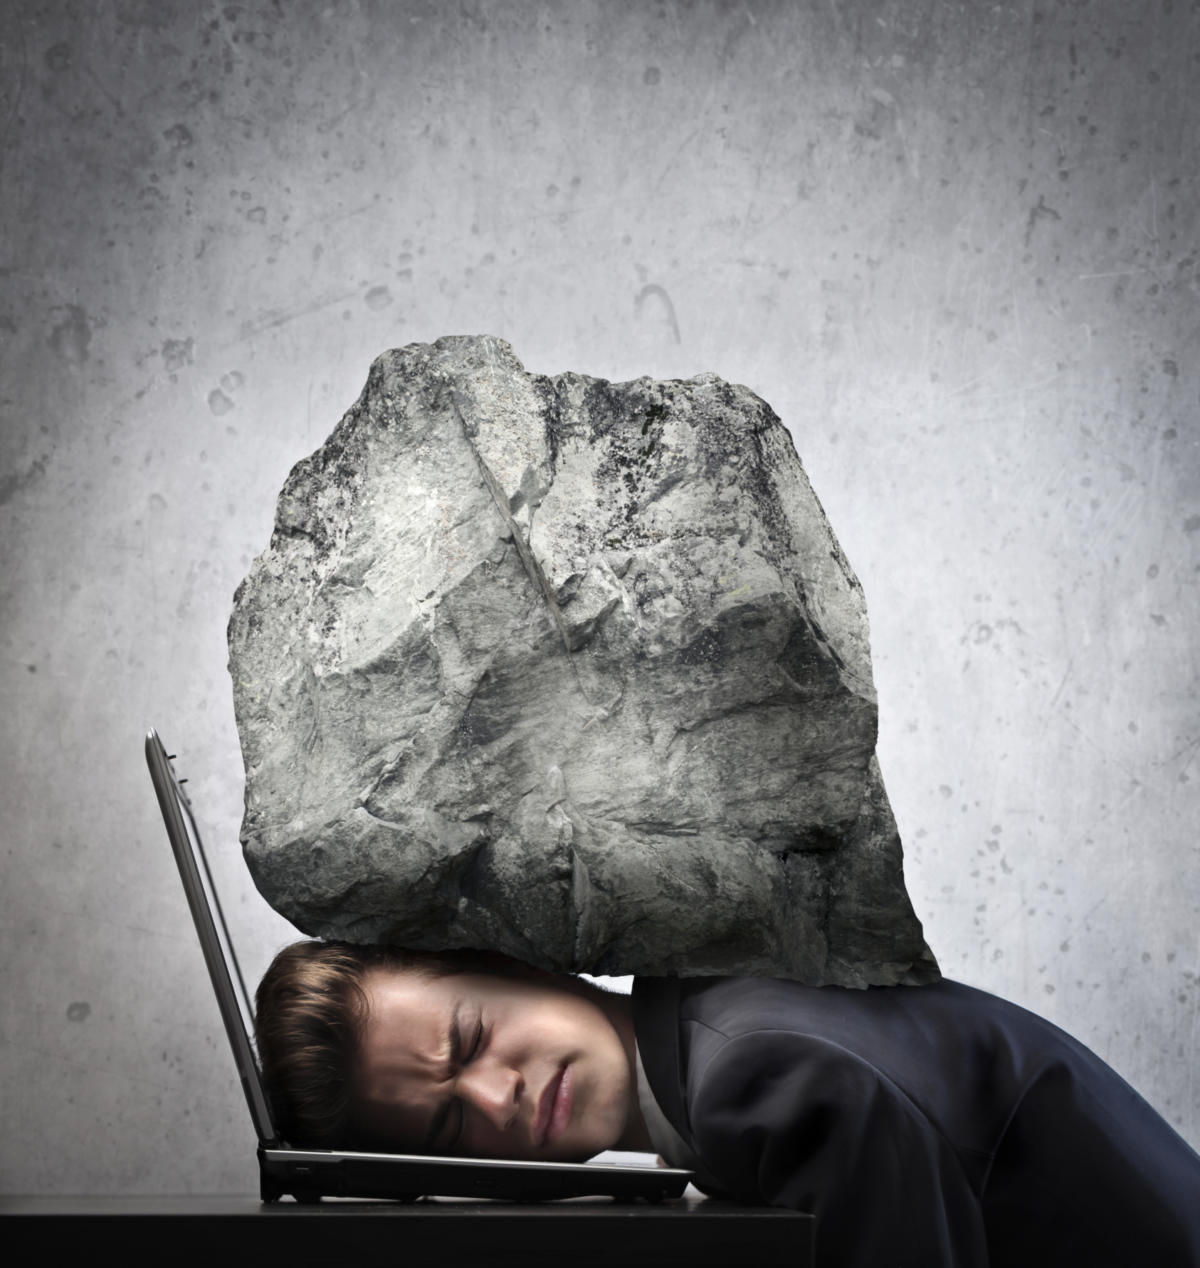 Man being crushed by large rock on top of laptop feeling stressed overworked